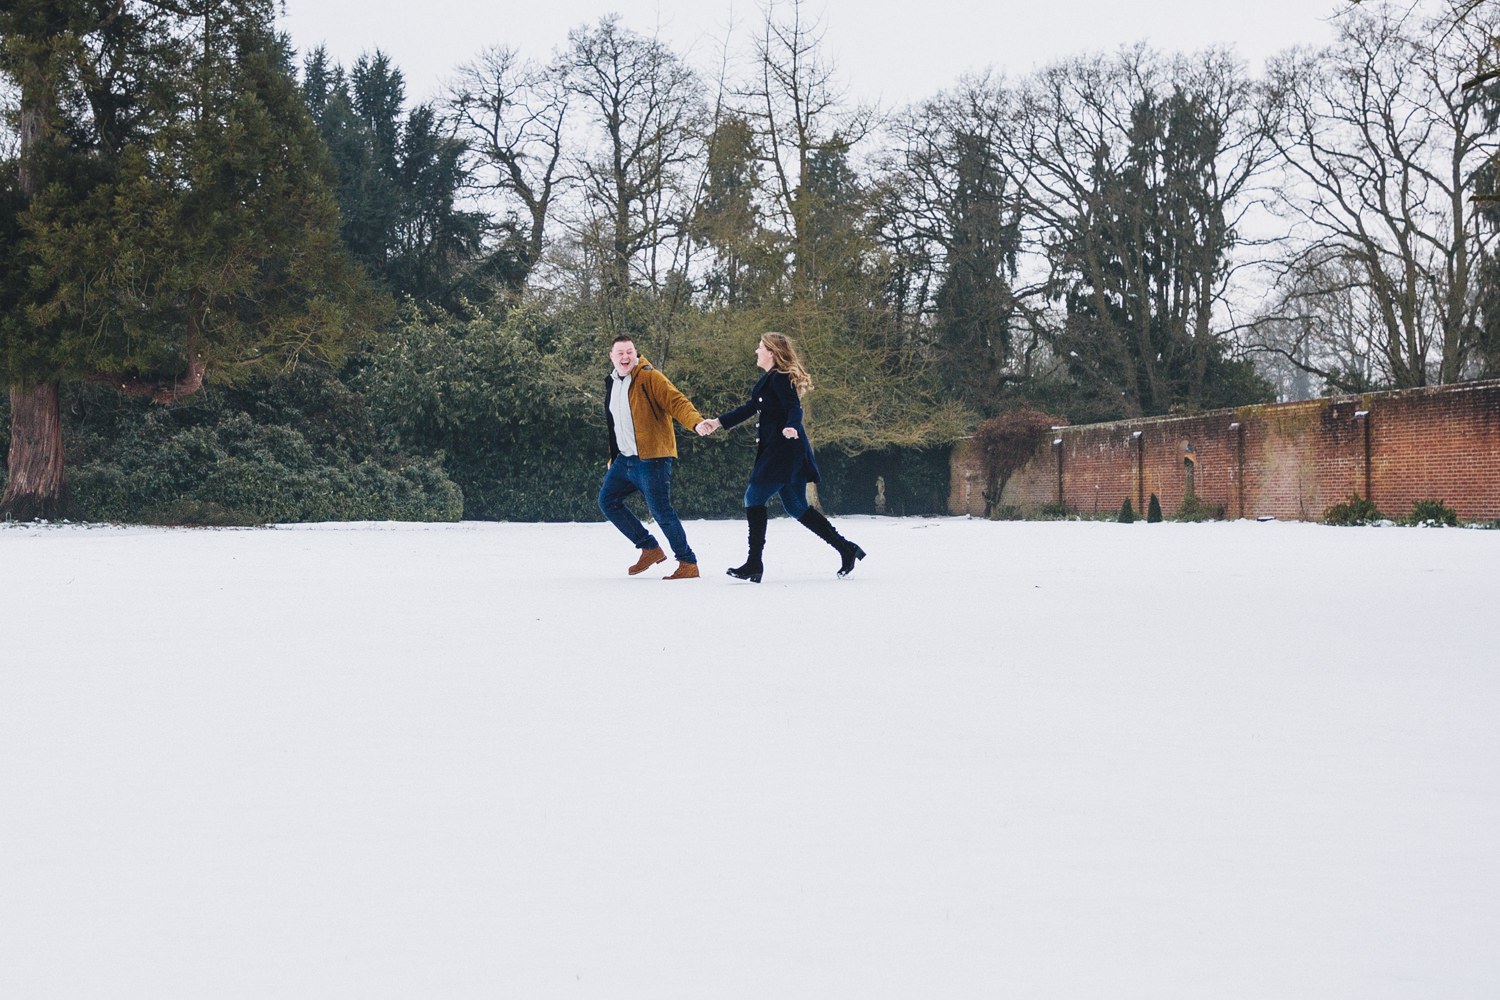 A Wintry Berkshire Photoshoot